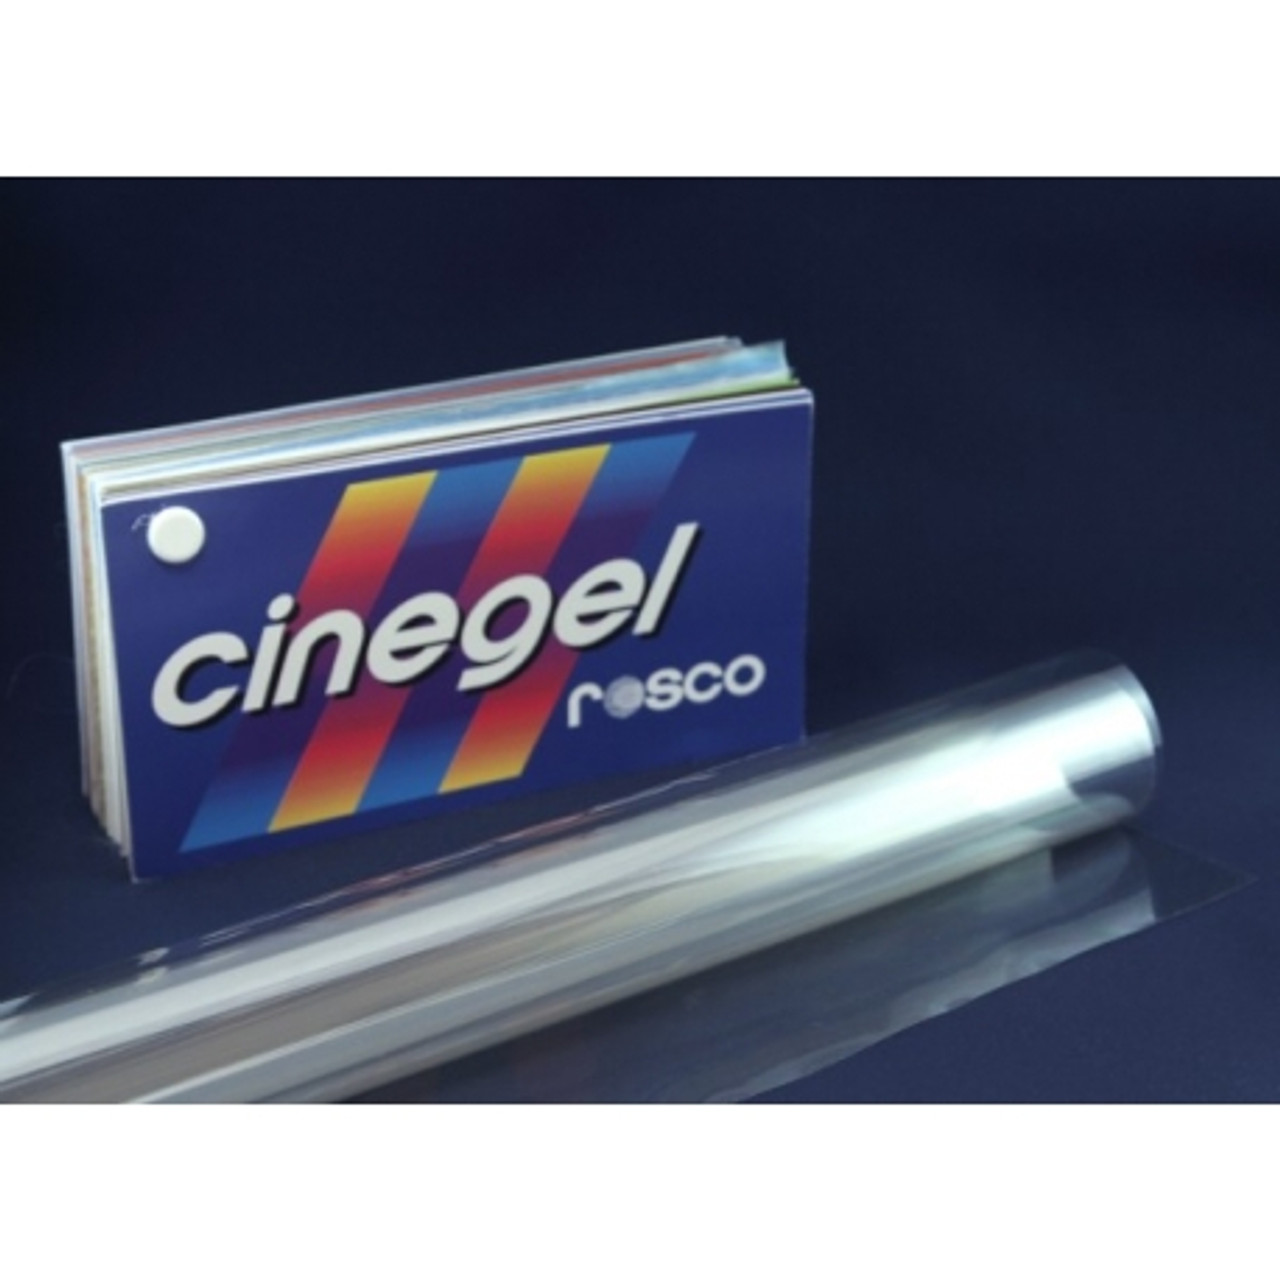 "#3114 Rosco Cinegel Tough UV Filter, 20x24"", Gels"